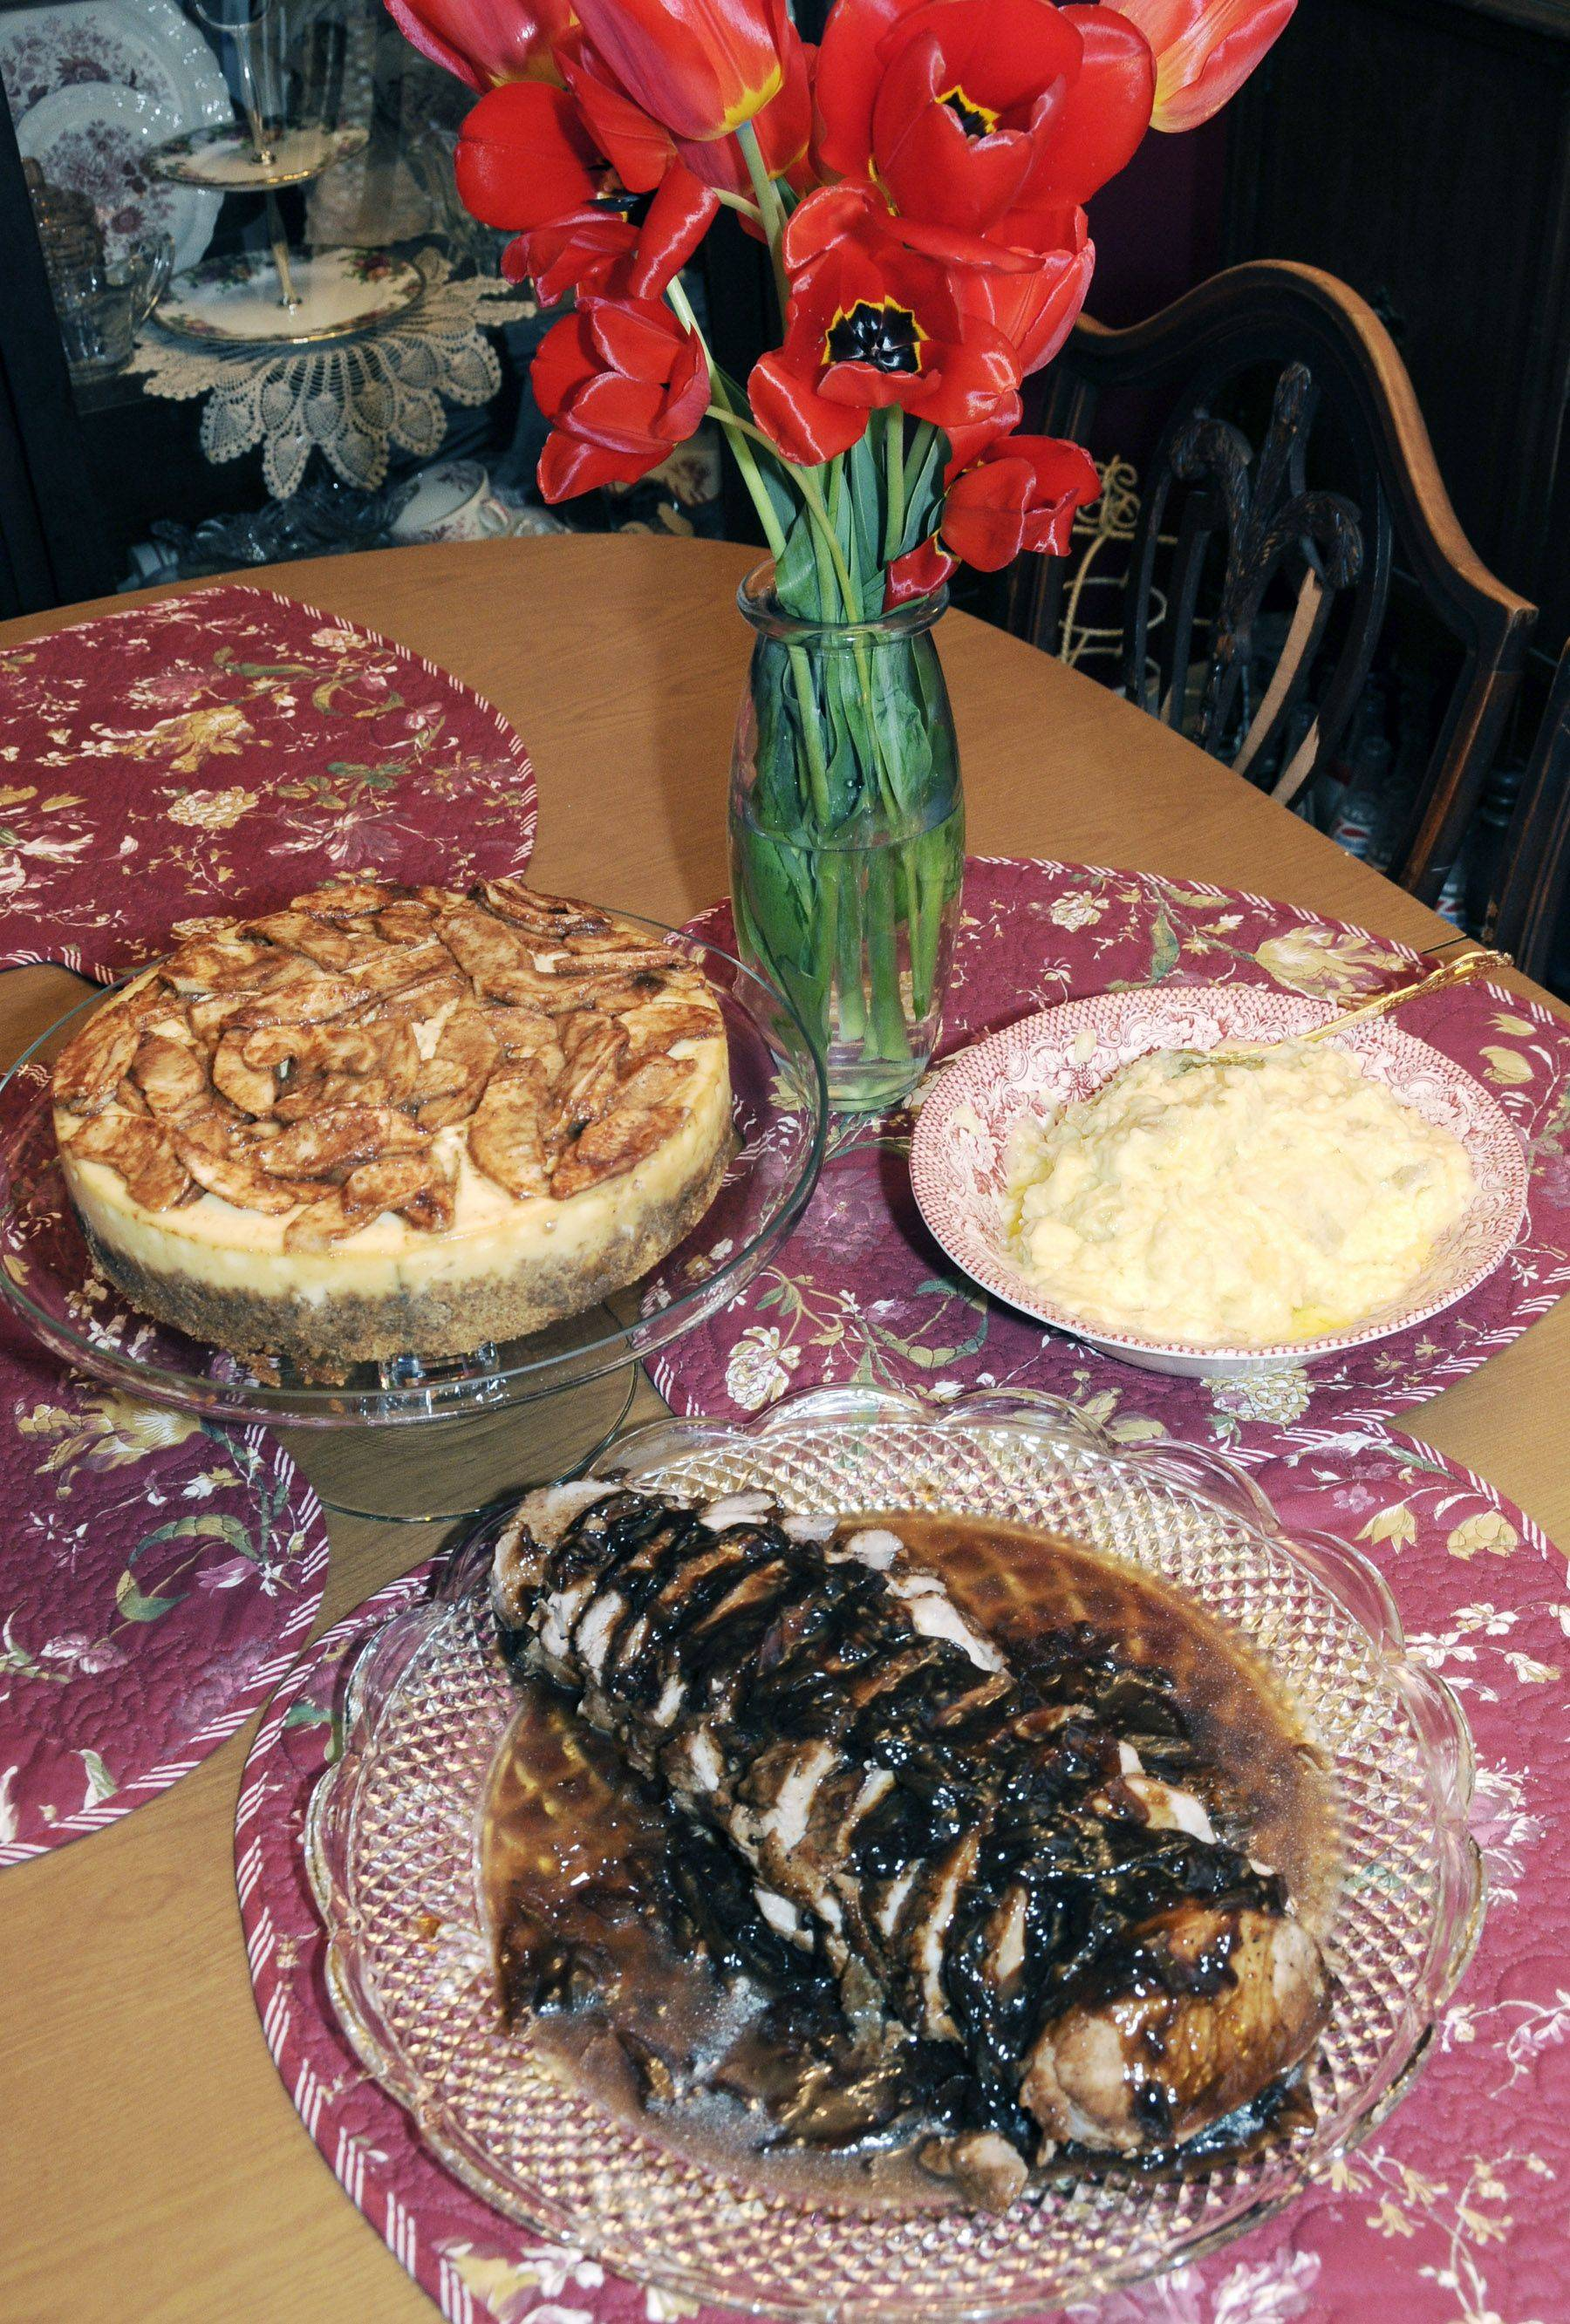 Kathy Amant's Terriyaki Pork Loin Roast takes center stage, but her Dutch apple cheesecake, left, and garlic mashed potatoes make a strong supporting cast.